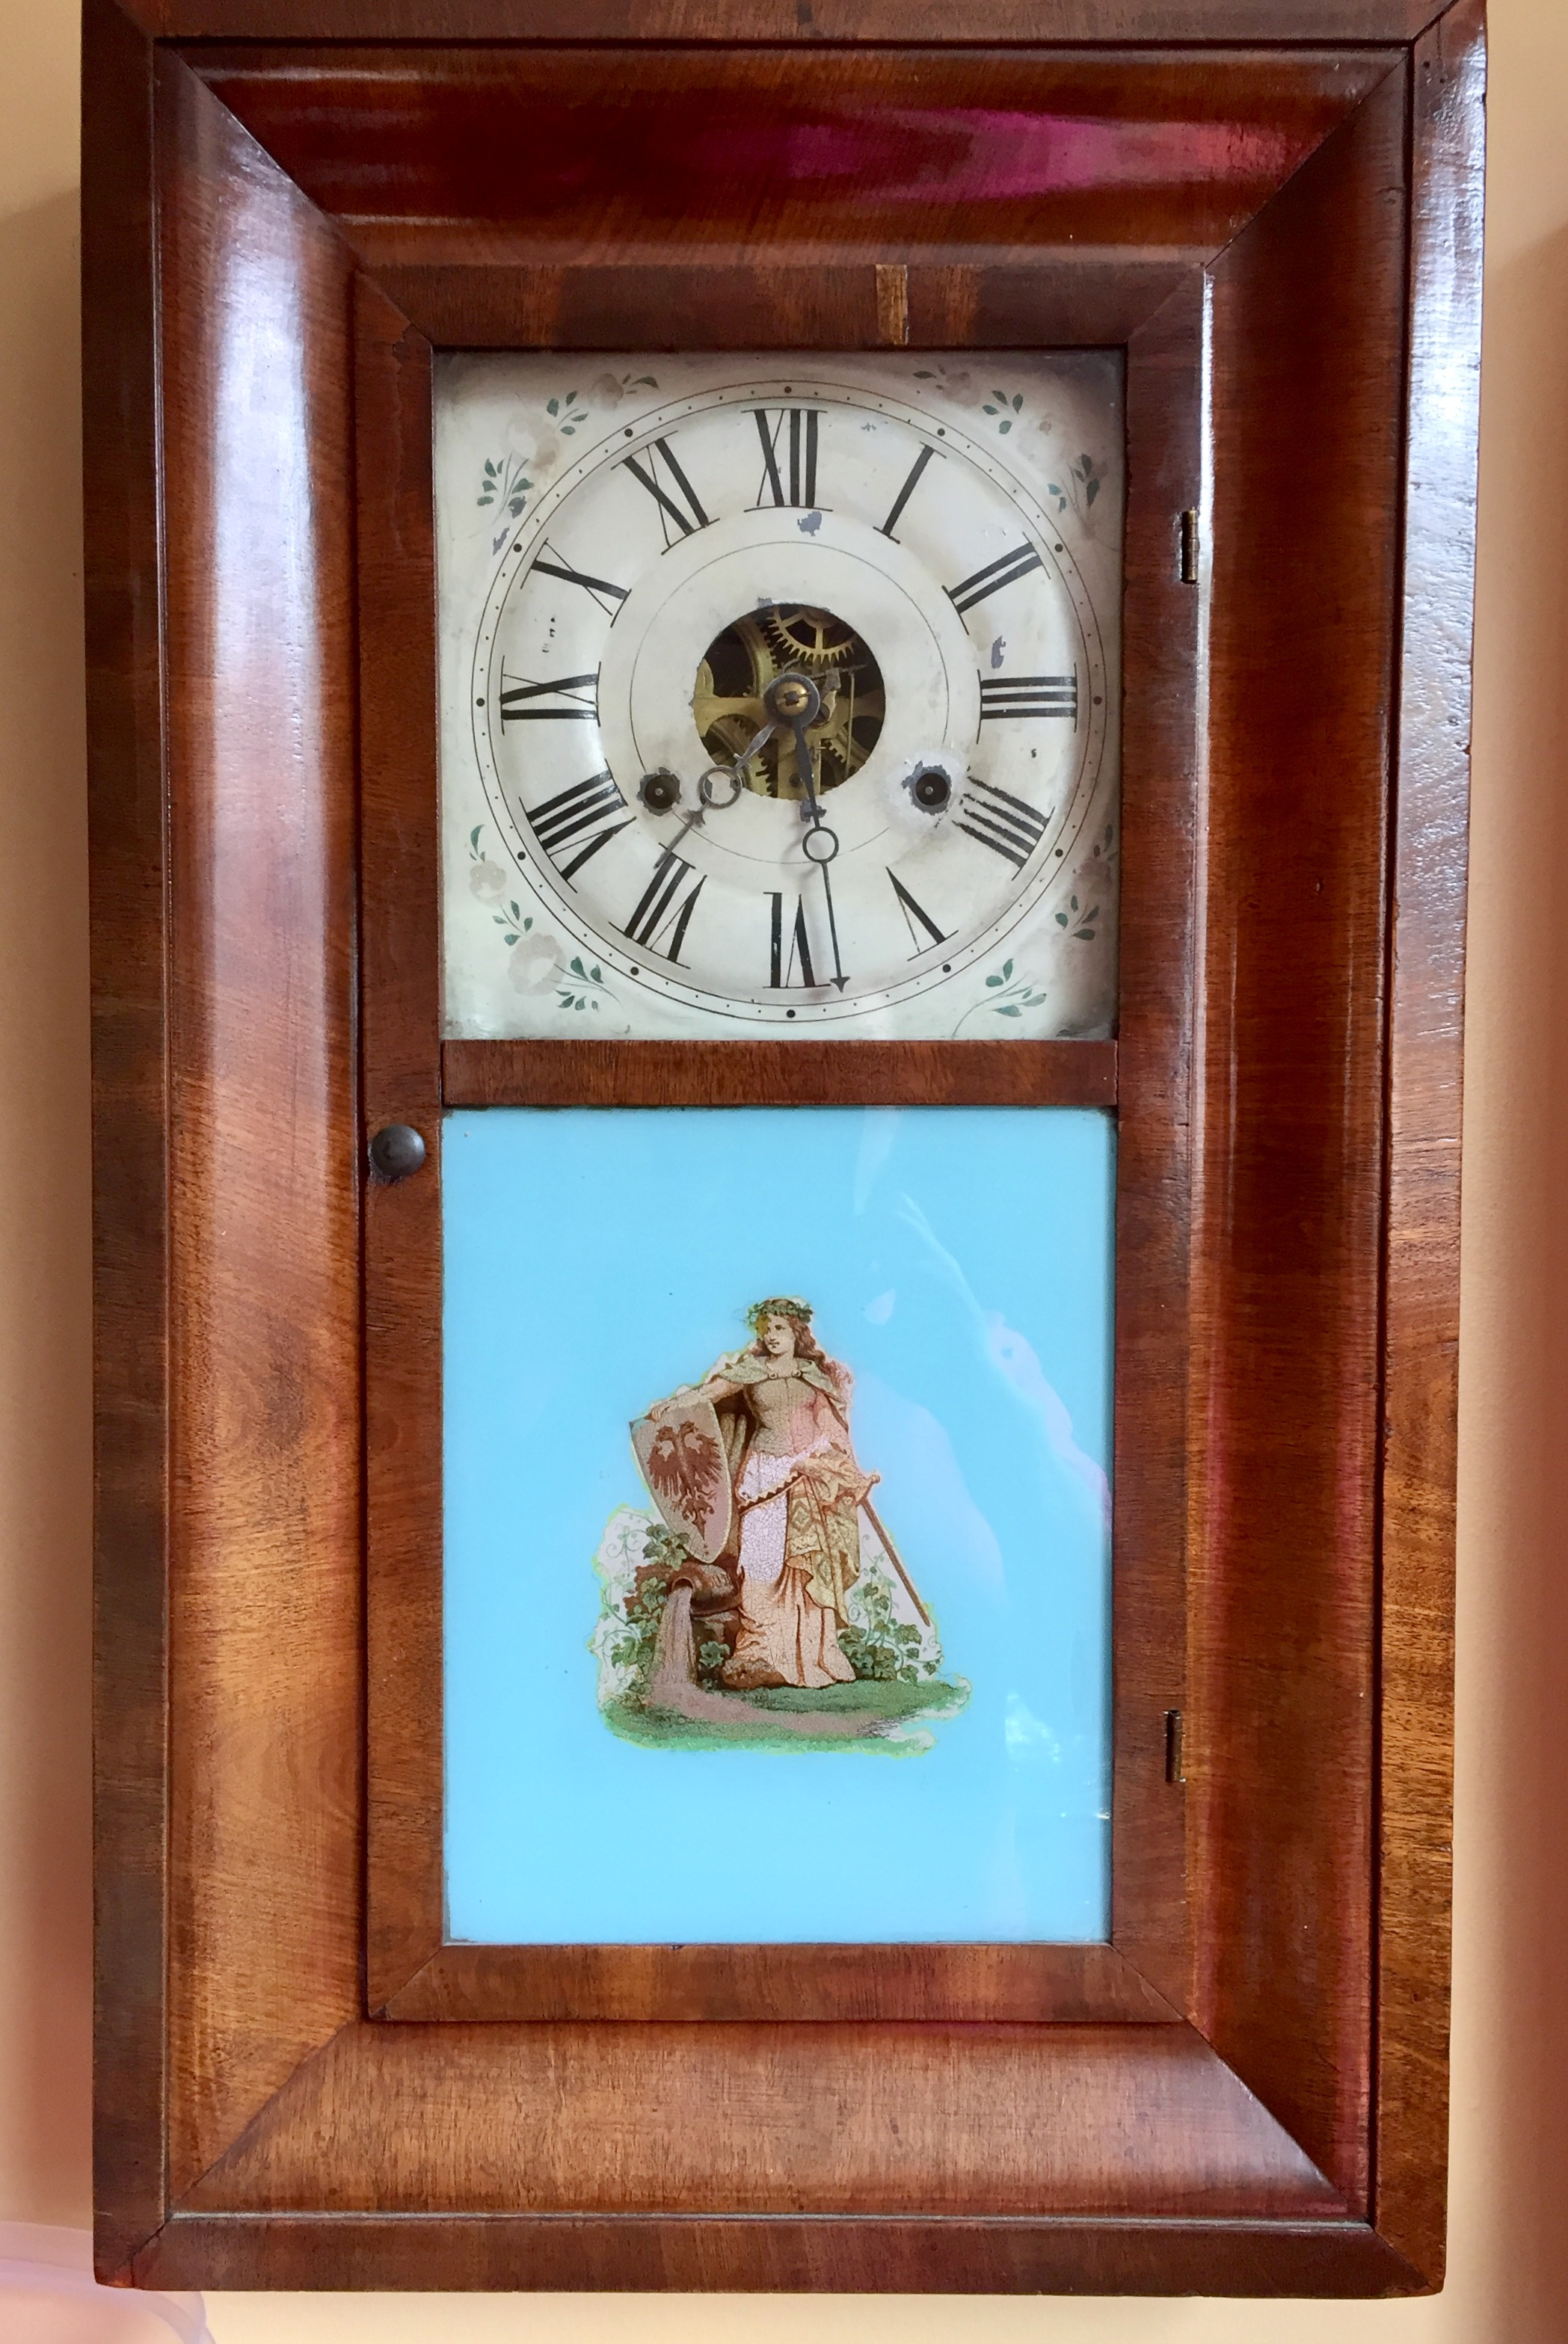 Lorne Park Dentist and clock enthusiast, Dr. Jack Cudmore's antique clock